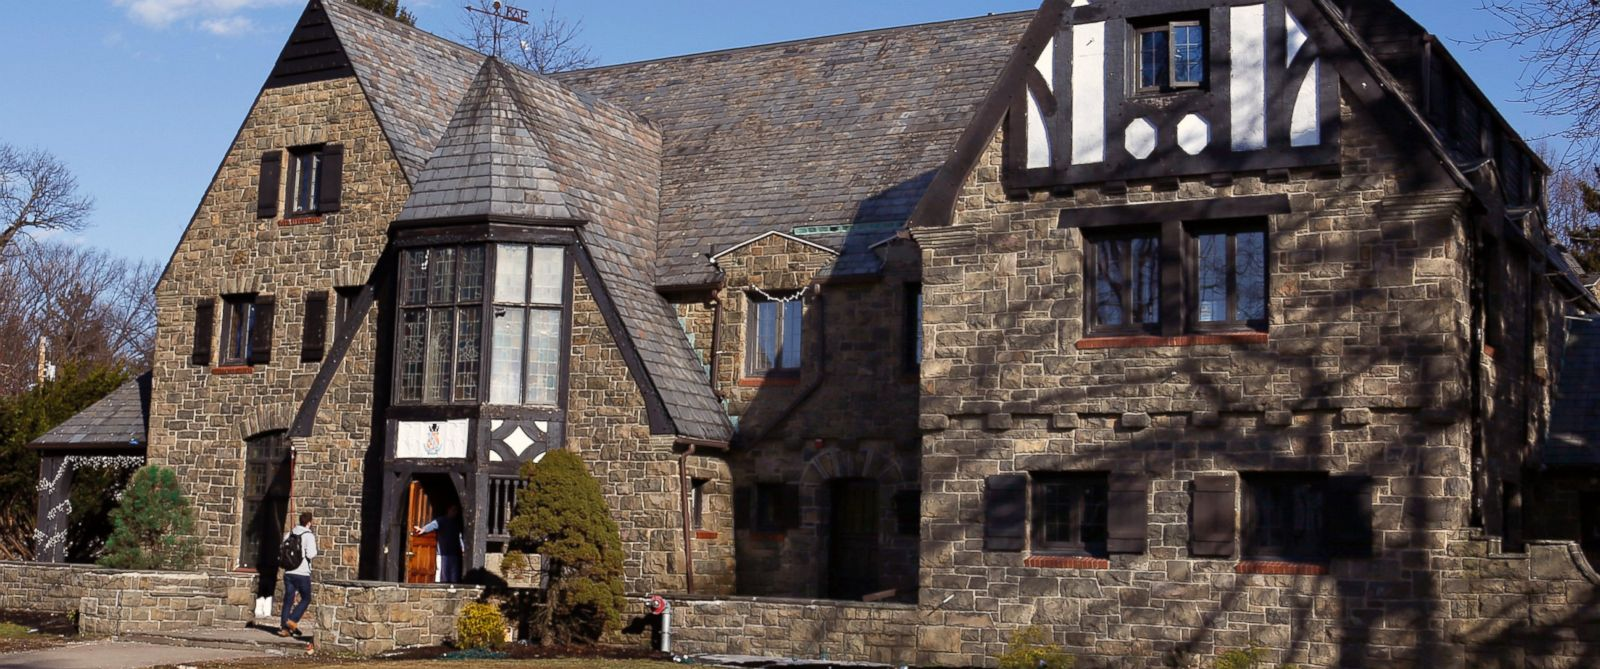 PHOTO: Members of Penn States Kappa Delta Rho fraternity chapter are now under criminal investigation, according to authorities, for allegedly maintaining a private Facebook page that featured pictures of nude, unconscious women.